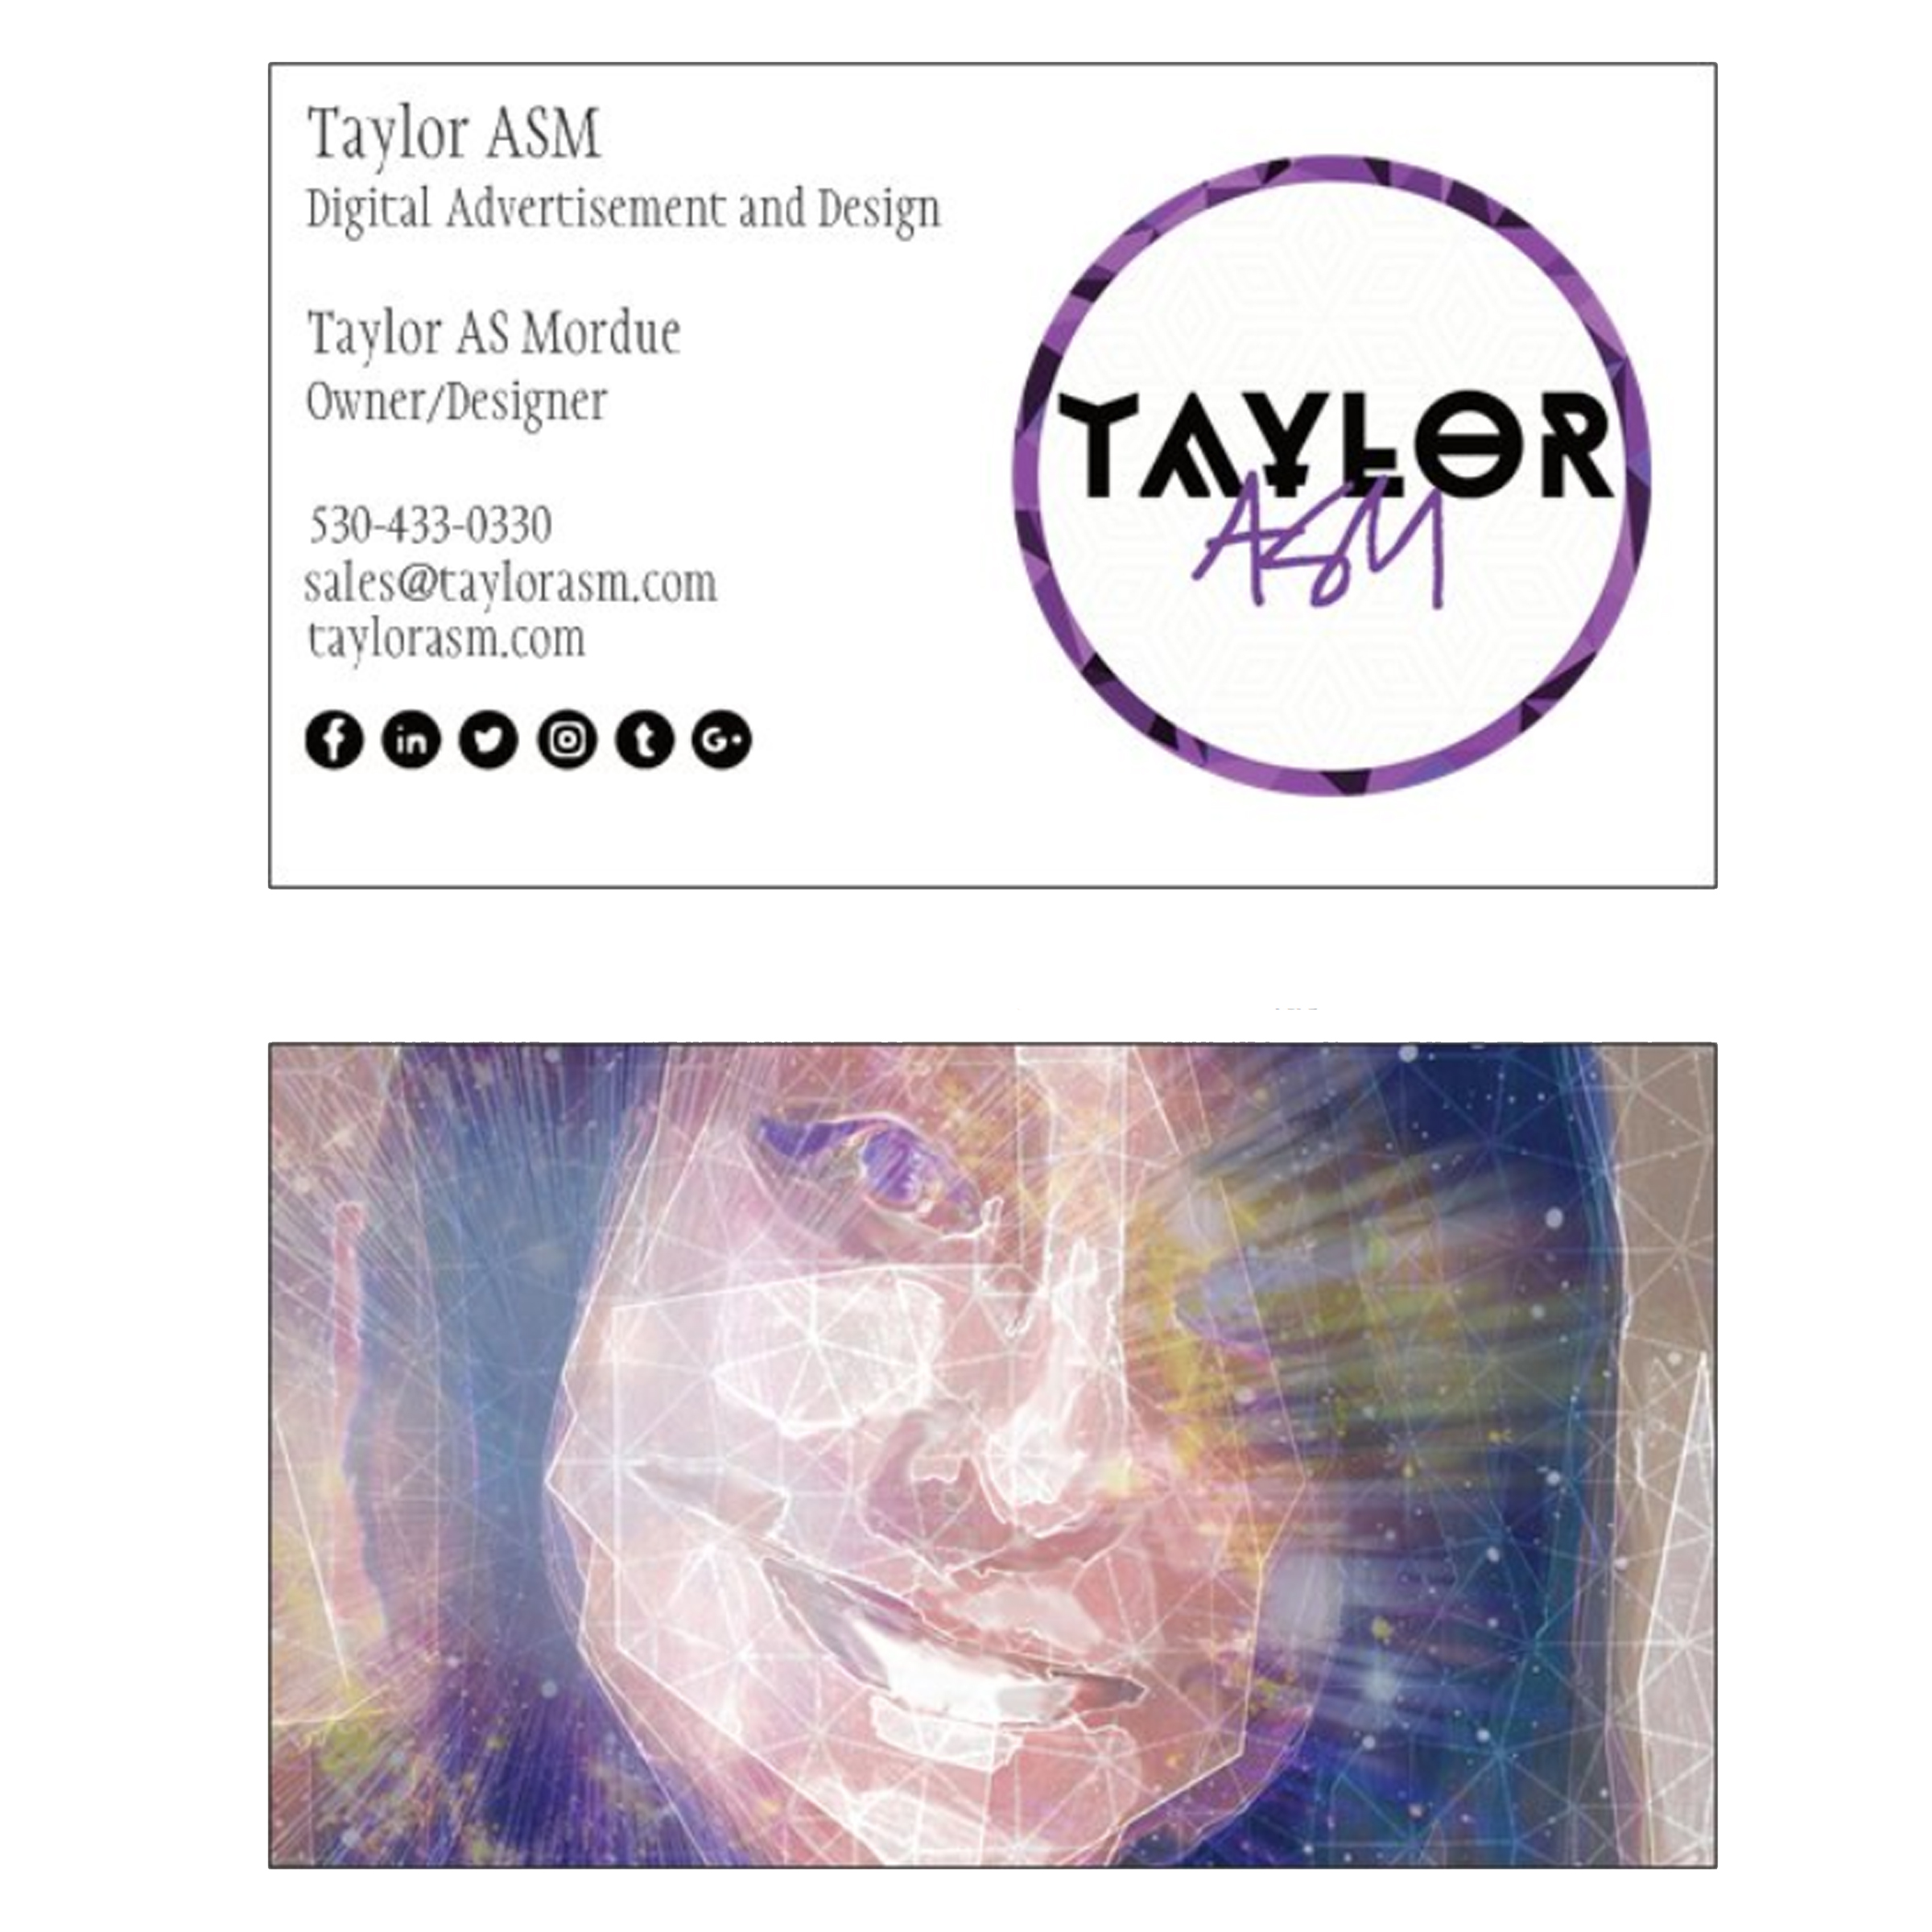 Taylor ASM businesscards